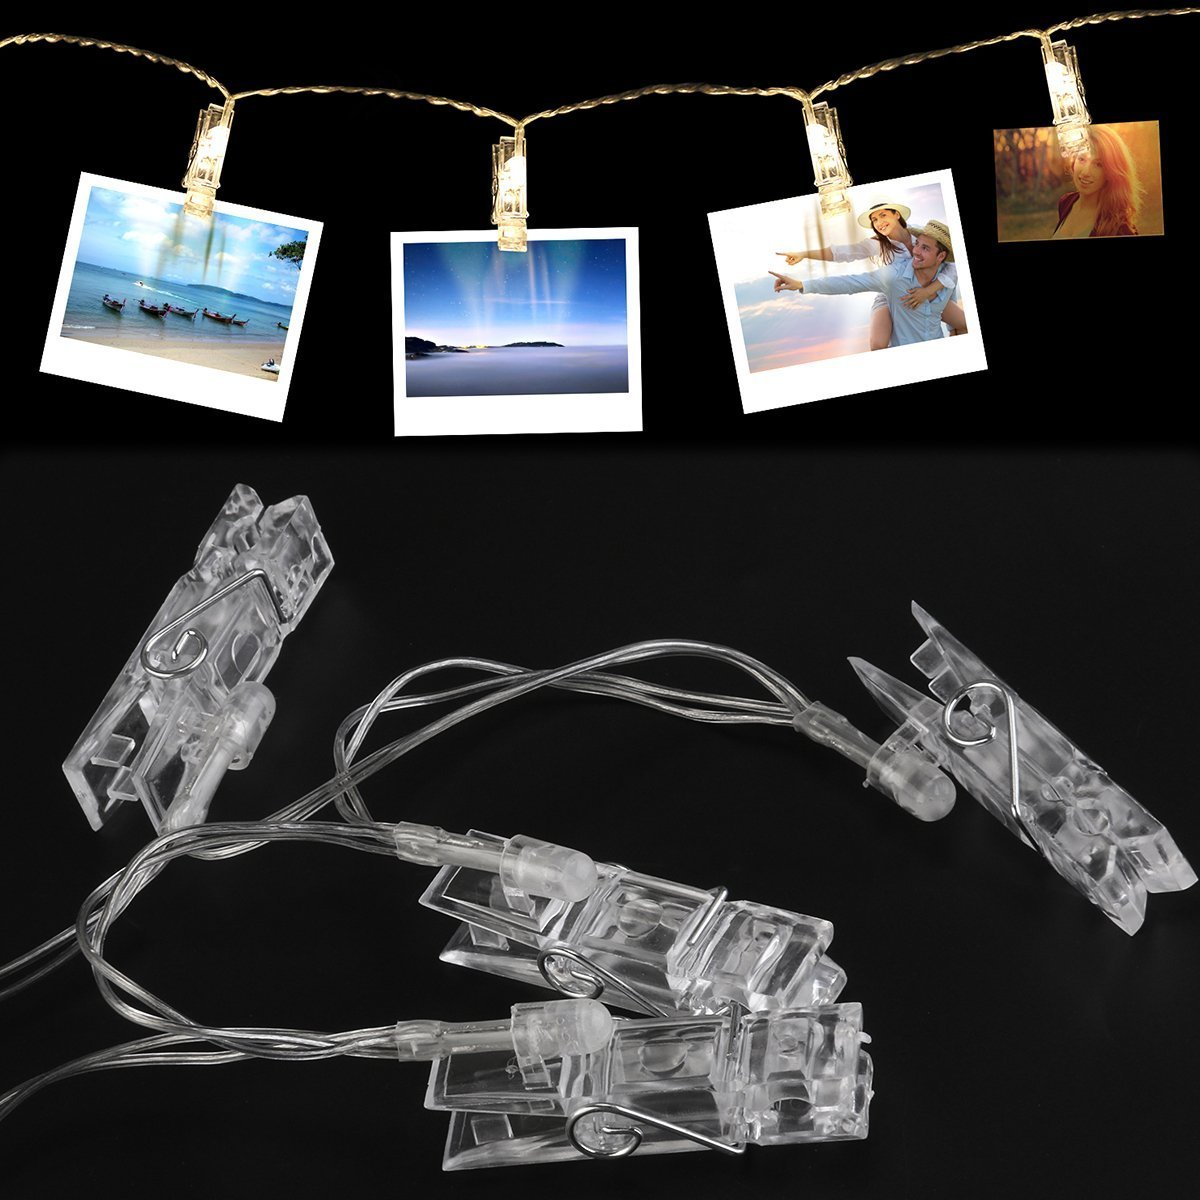 LED String Light with Clothespins, Clip, for Hanging Pictures, Photos, Artworks and More.. by gogomall (Image #8)